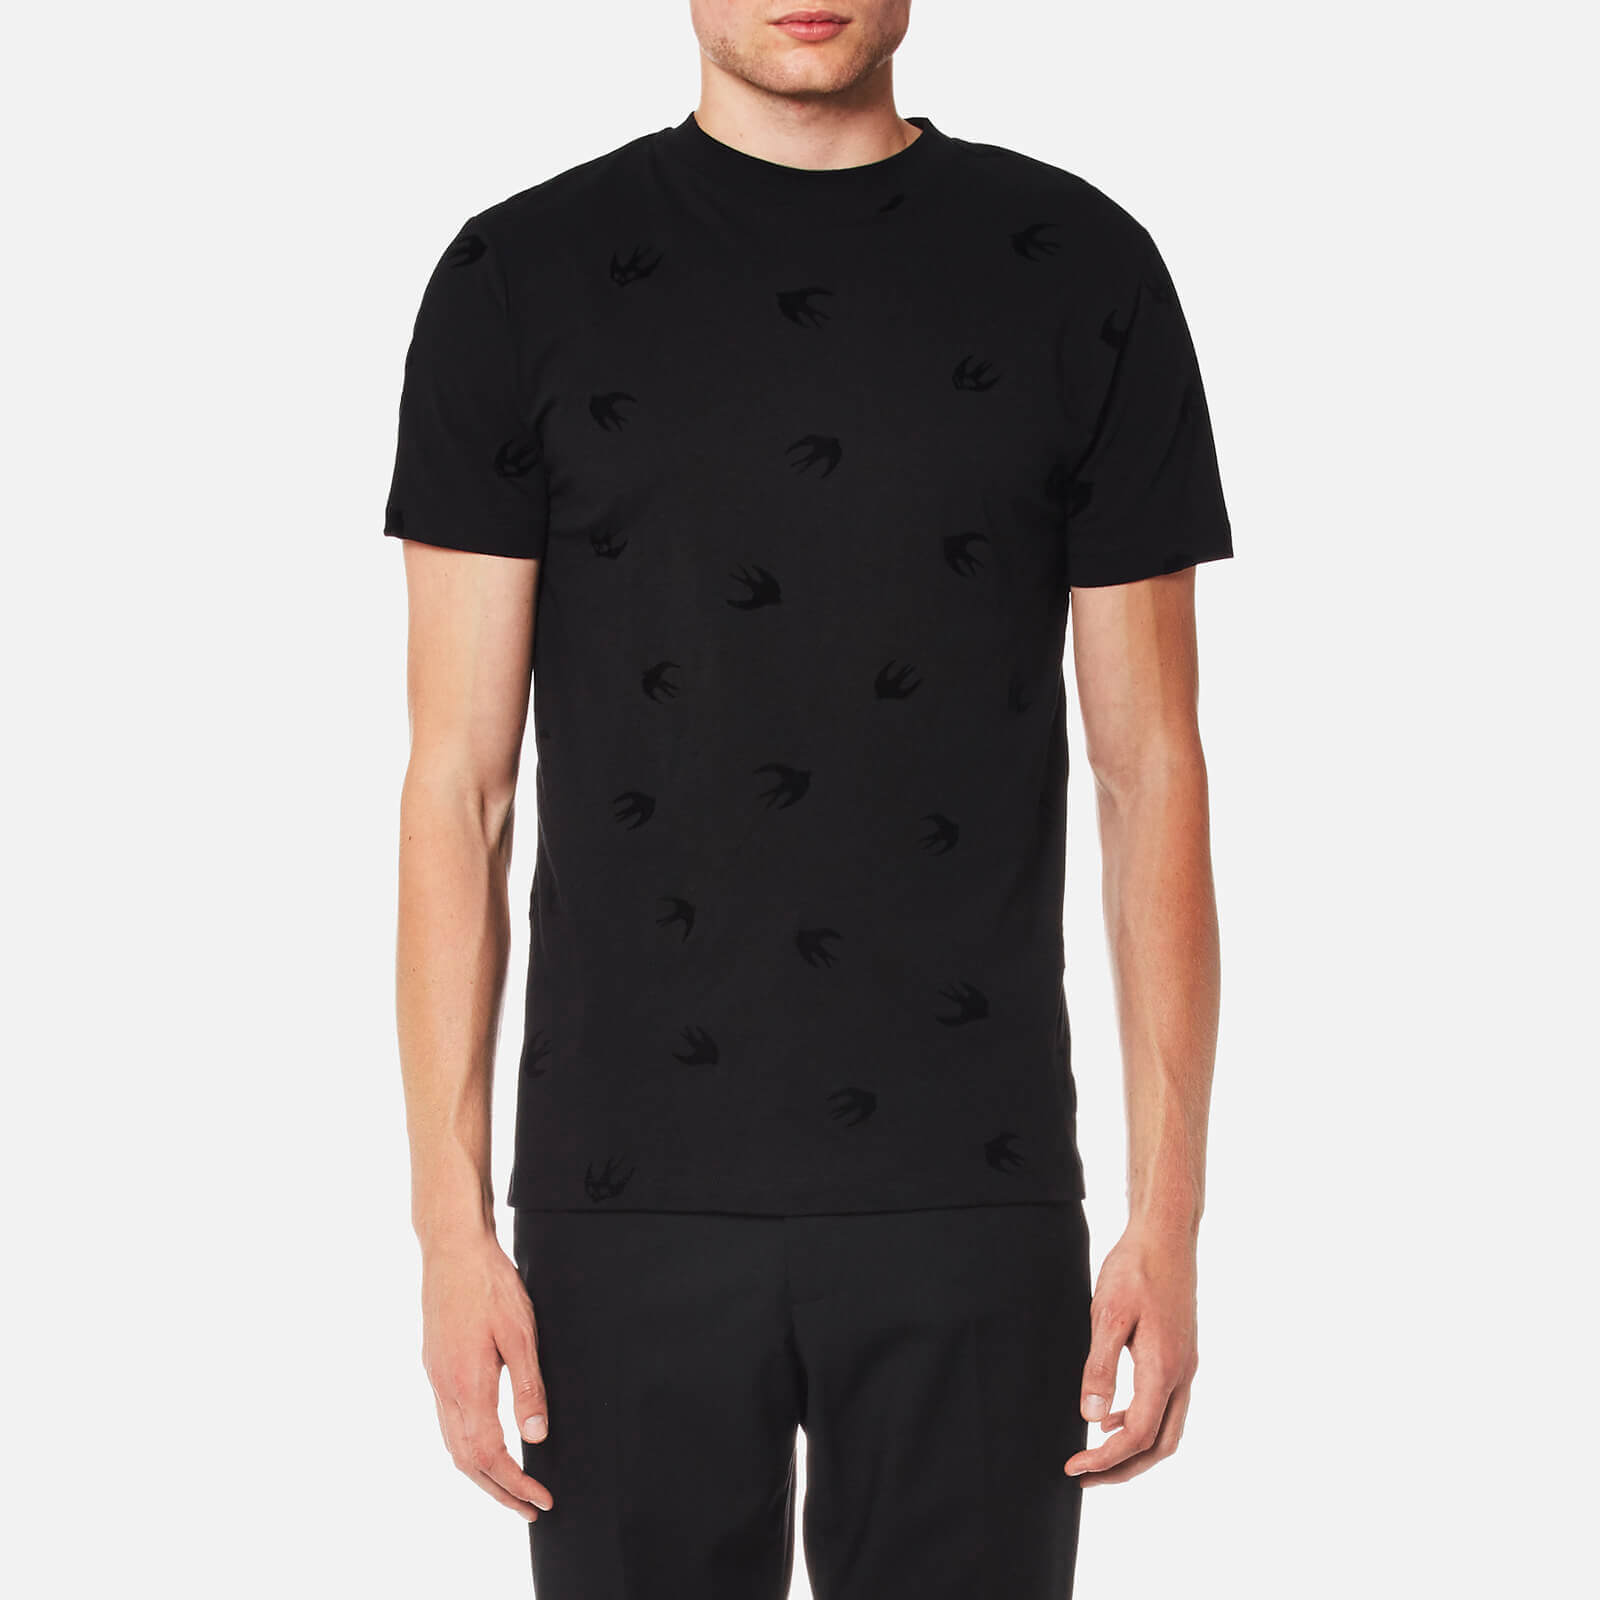 bfed26c27 McQ Alexander McQueen Men's Swallow T-Shirt - Darkest Black - Free UK  Delivery over £50